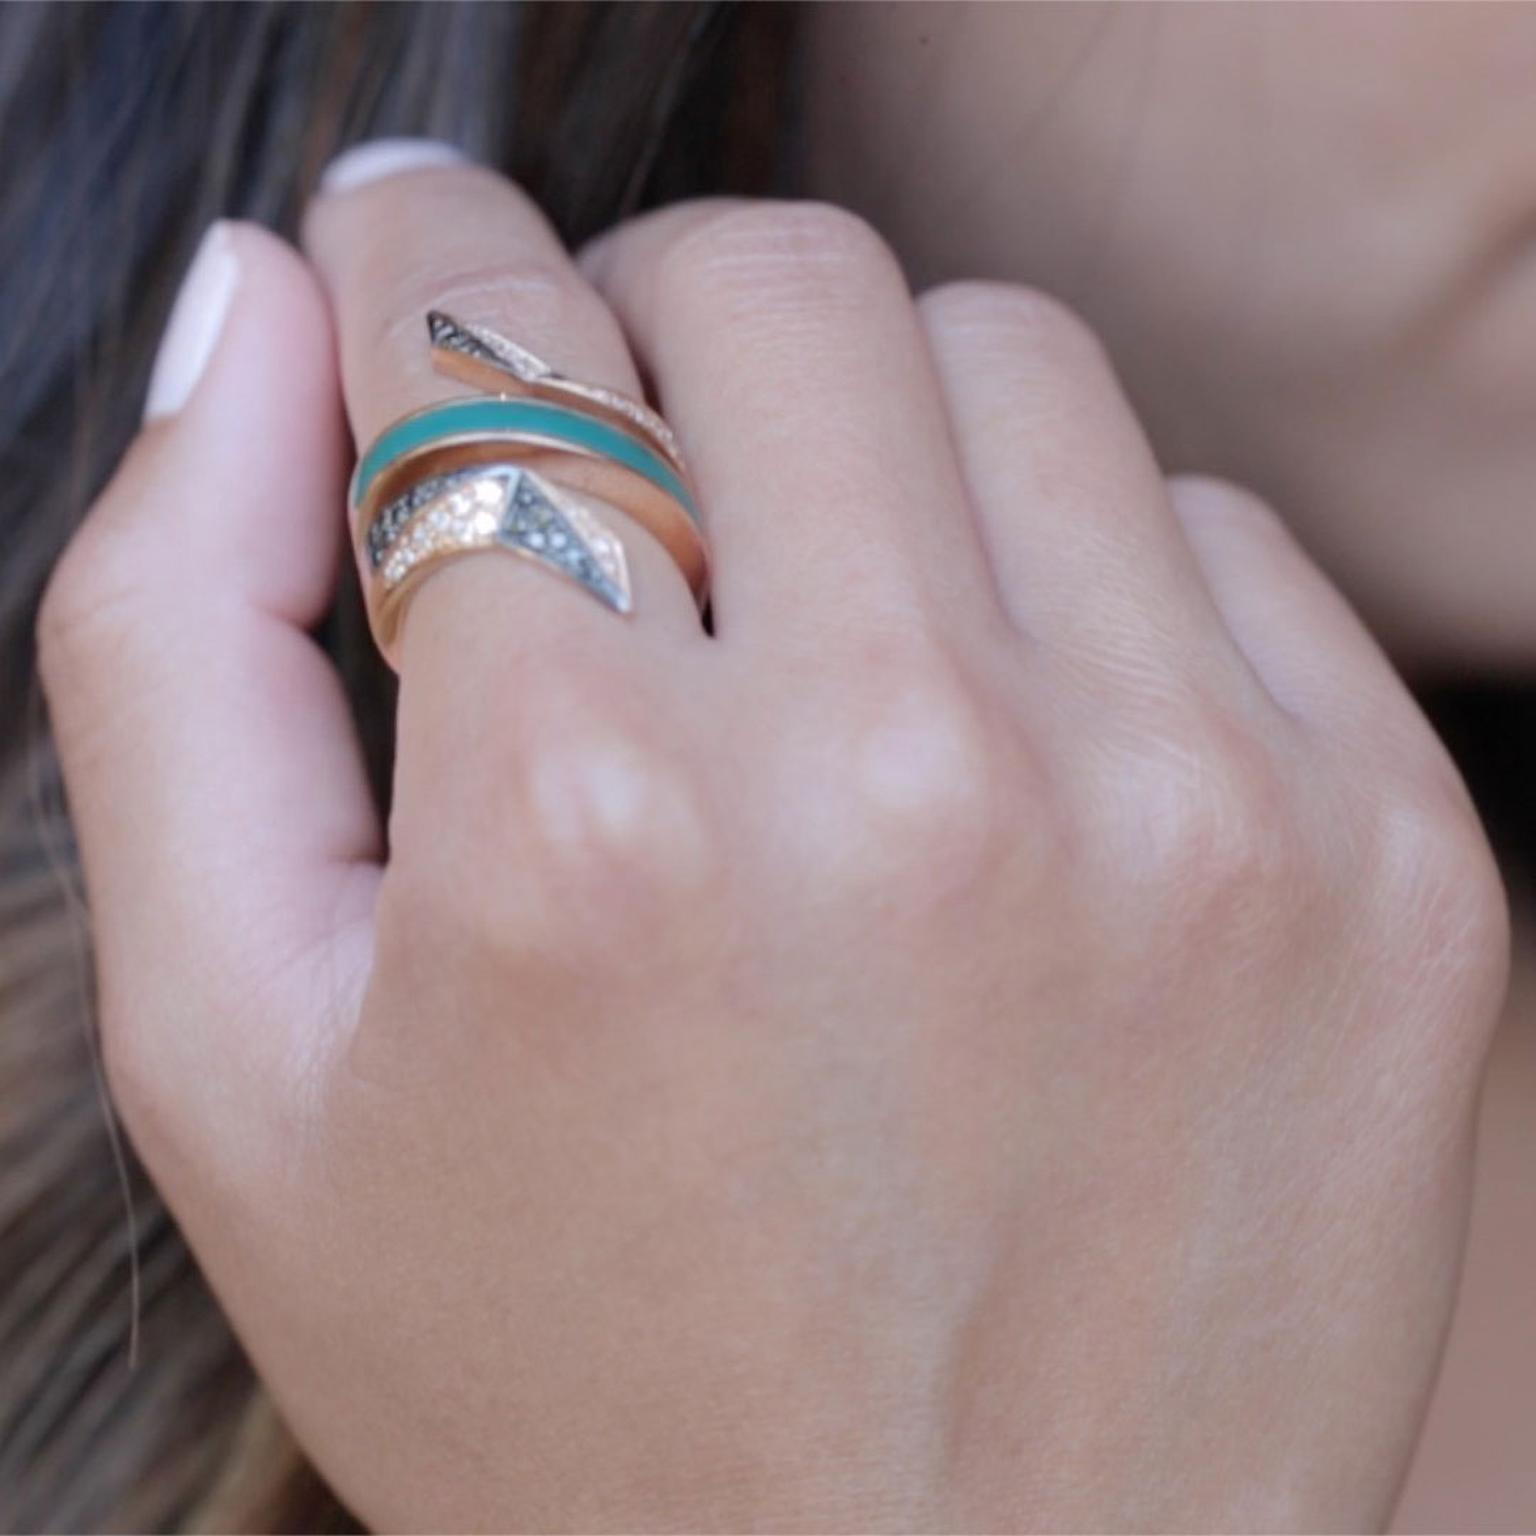 Octium Twist Collection turquoise ring